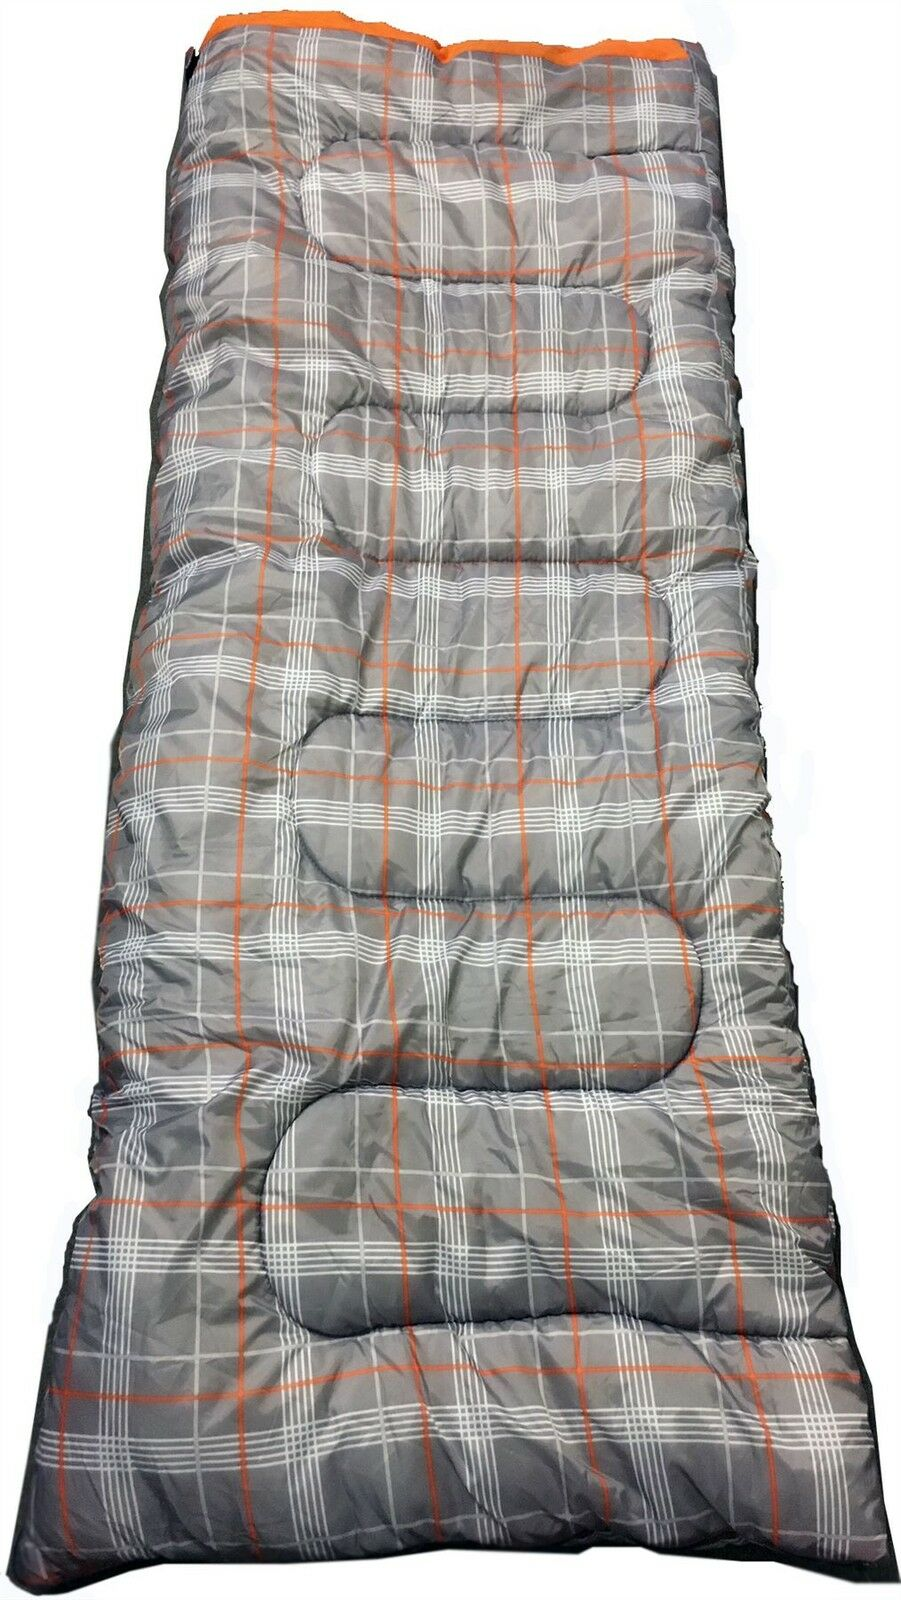 ADULT SLEEPING BAG 3 SEASON 300GSM FILL WITH STORAGE BAG - OLPRO HUSH (PATTERN)